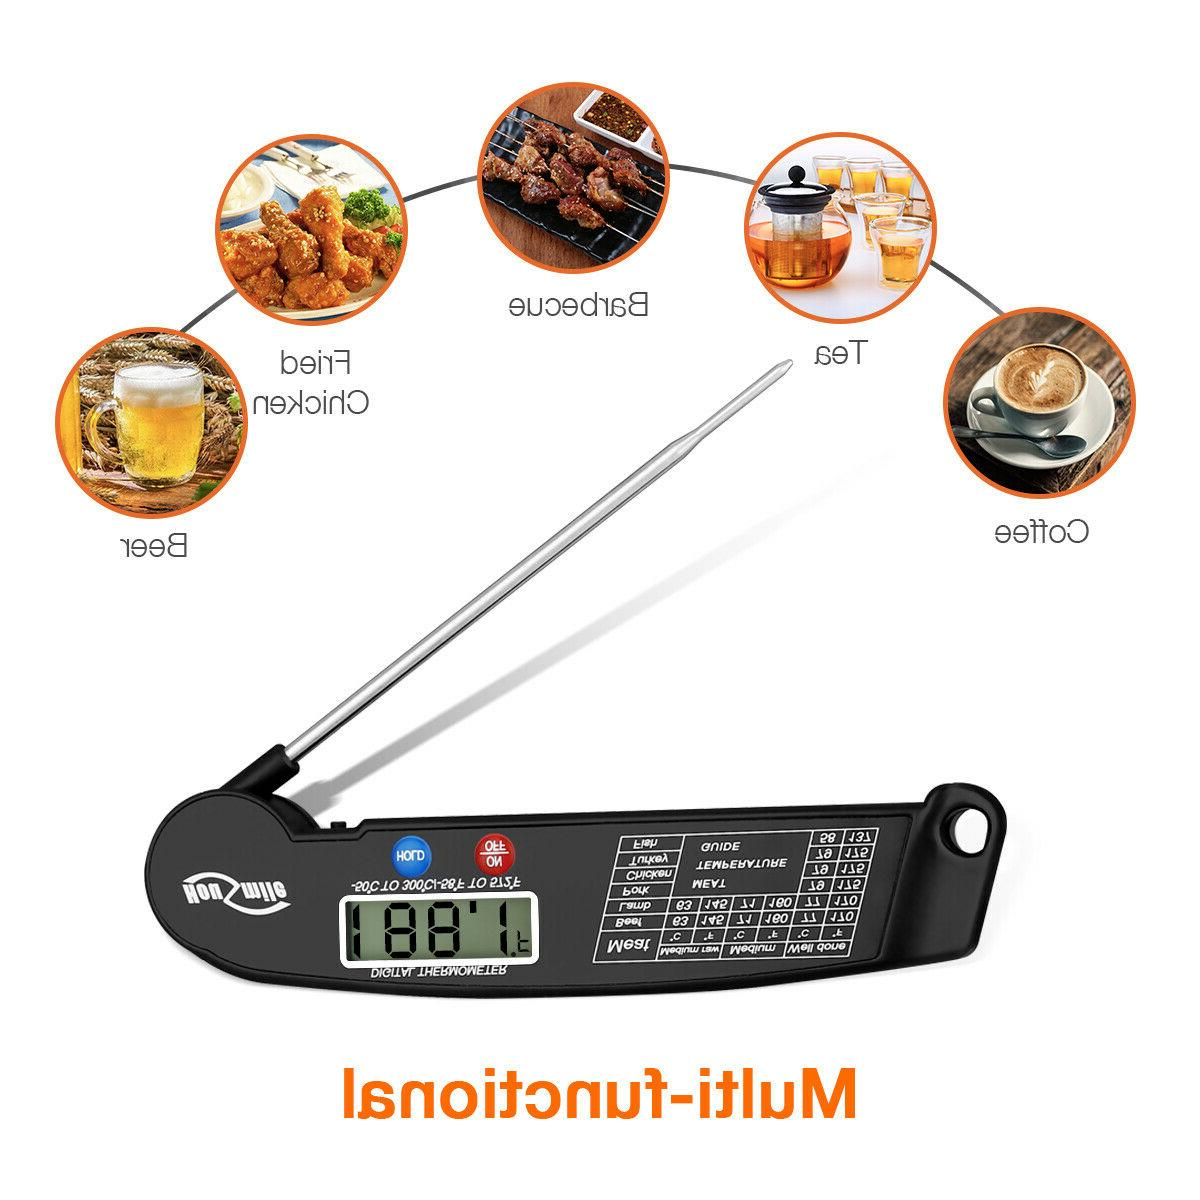 Digital Meat Thermometer Probe Kitchen Food Cooking Grill Measure Tool